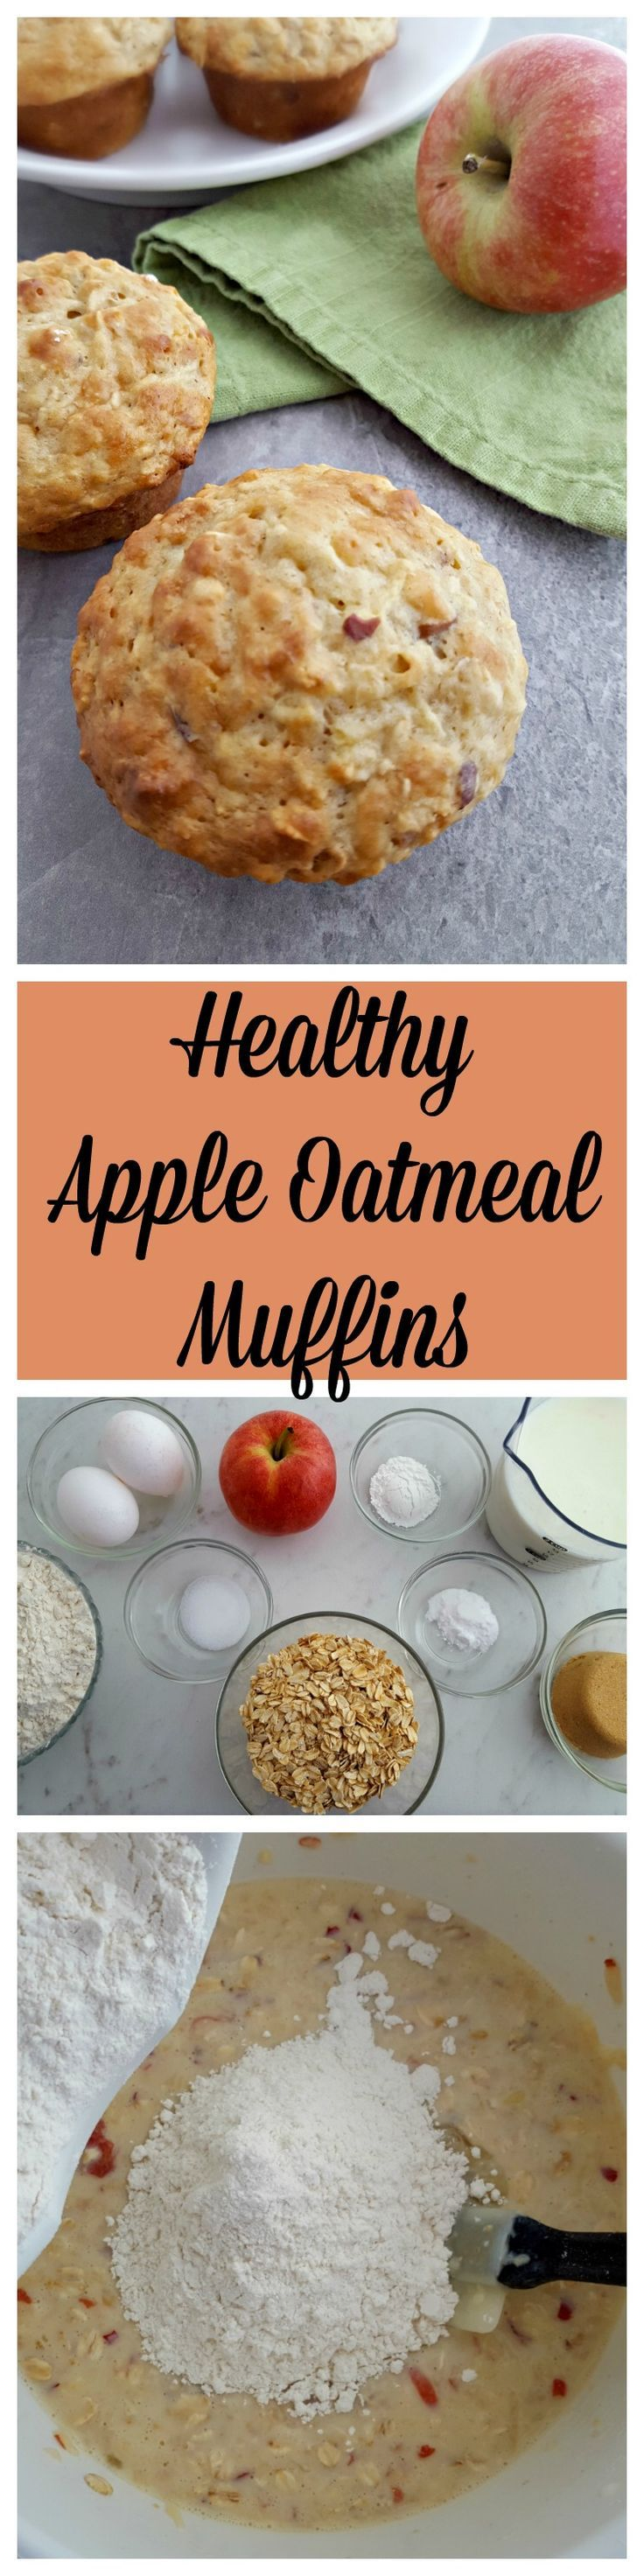 These Healthy Apple Oatmeal Muffins are a great way to start your morning, or give your afternoon a boost with a snack!